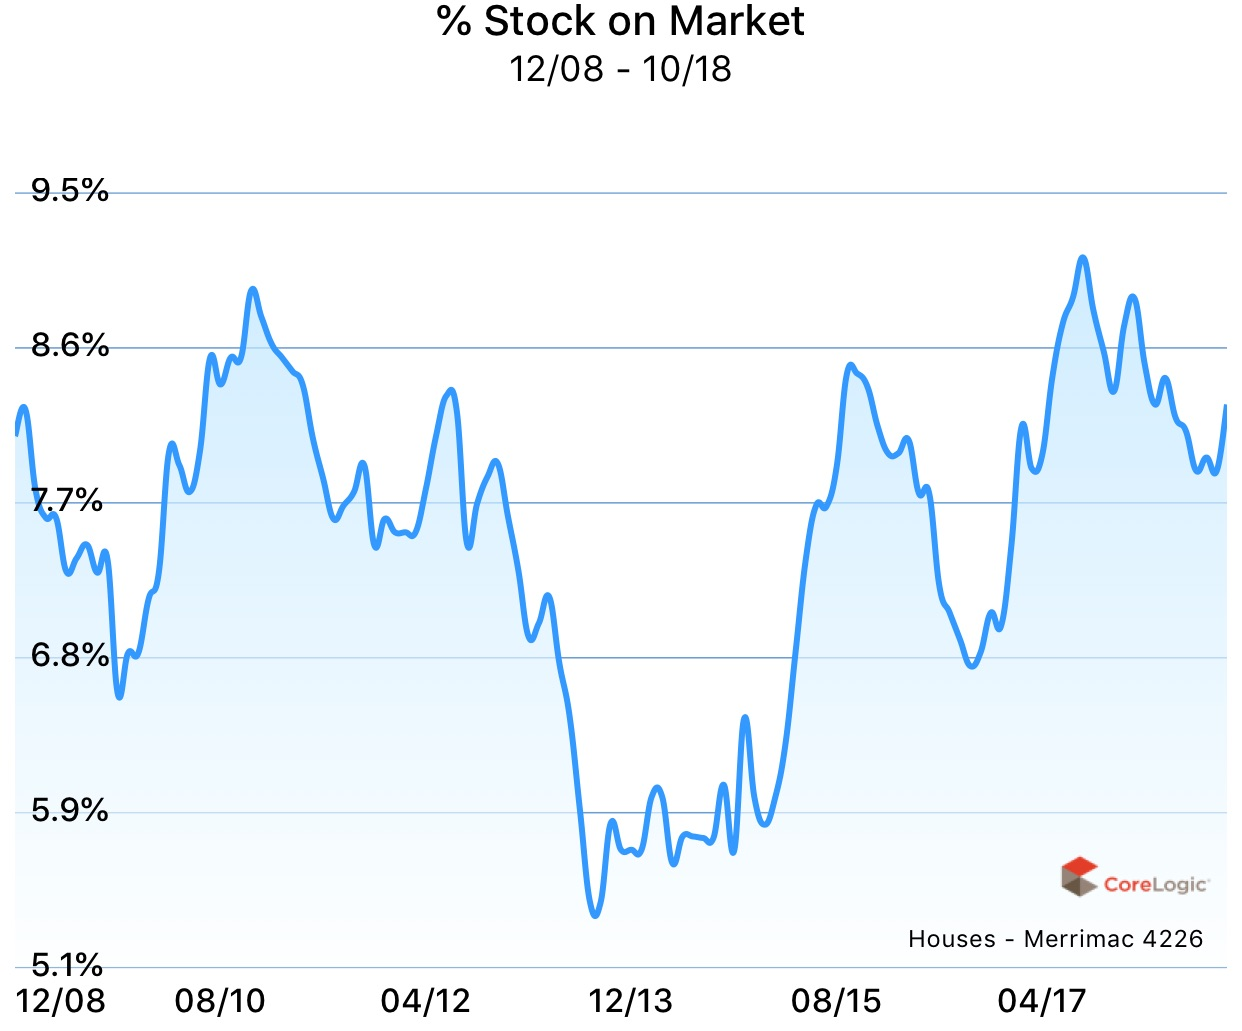 Percentage stock on market for houses in Merrimac, Gold Coast